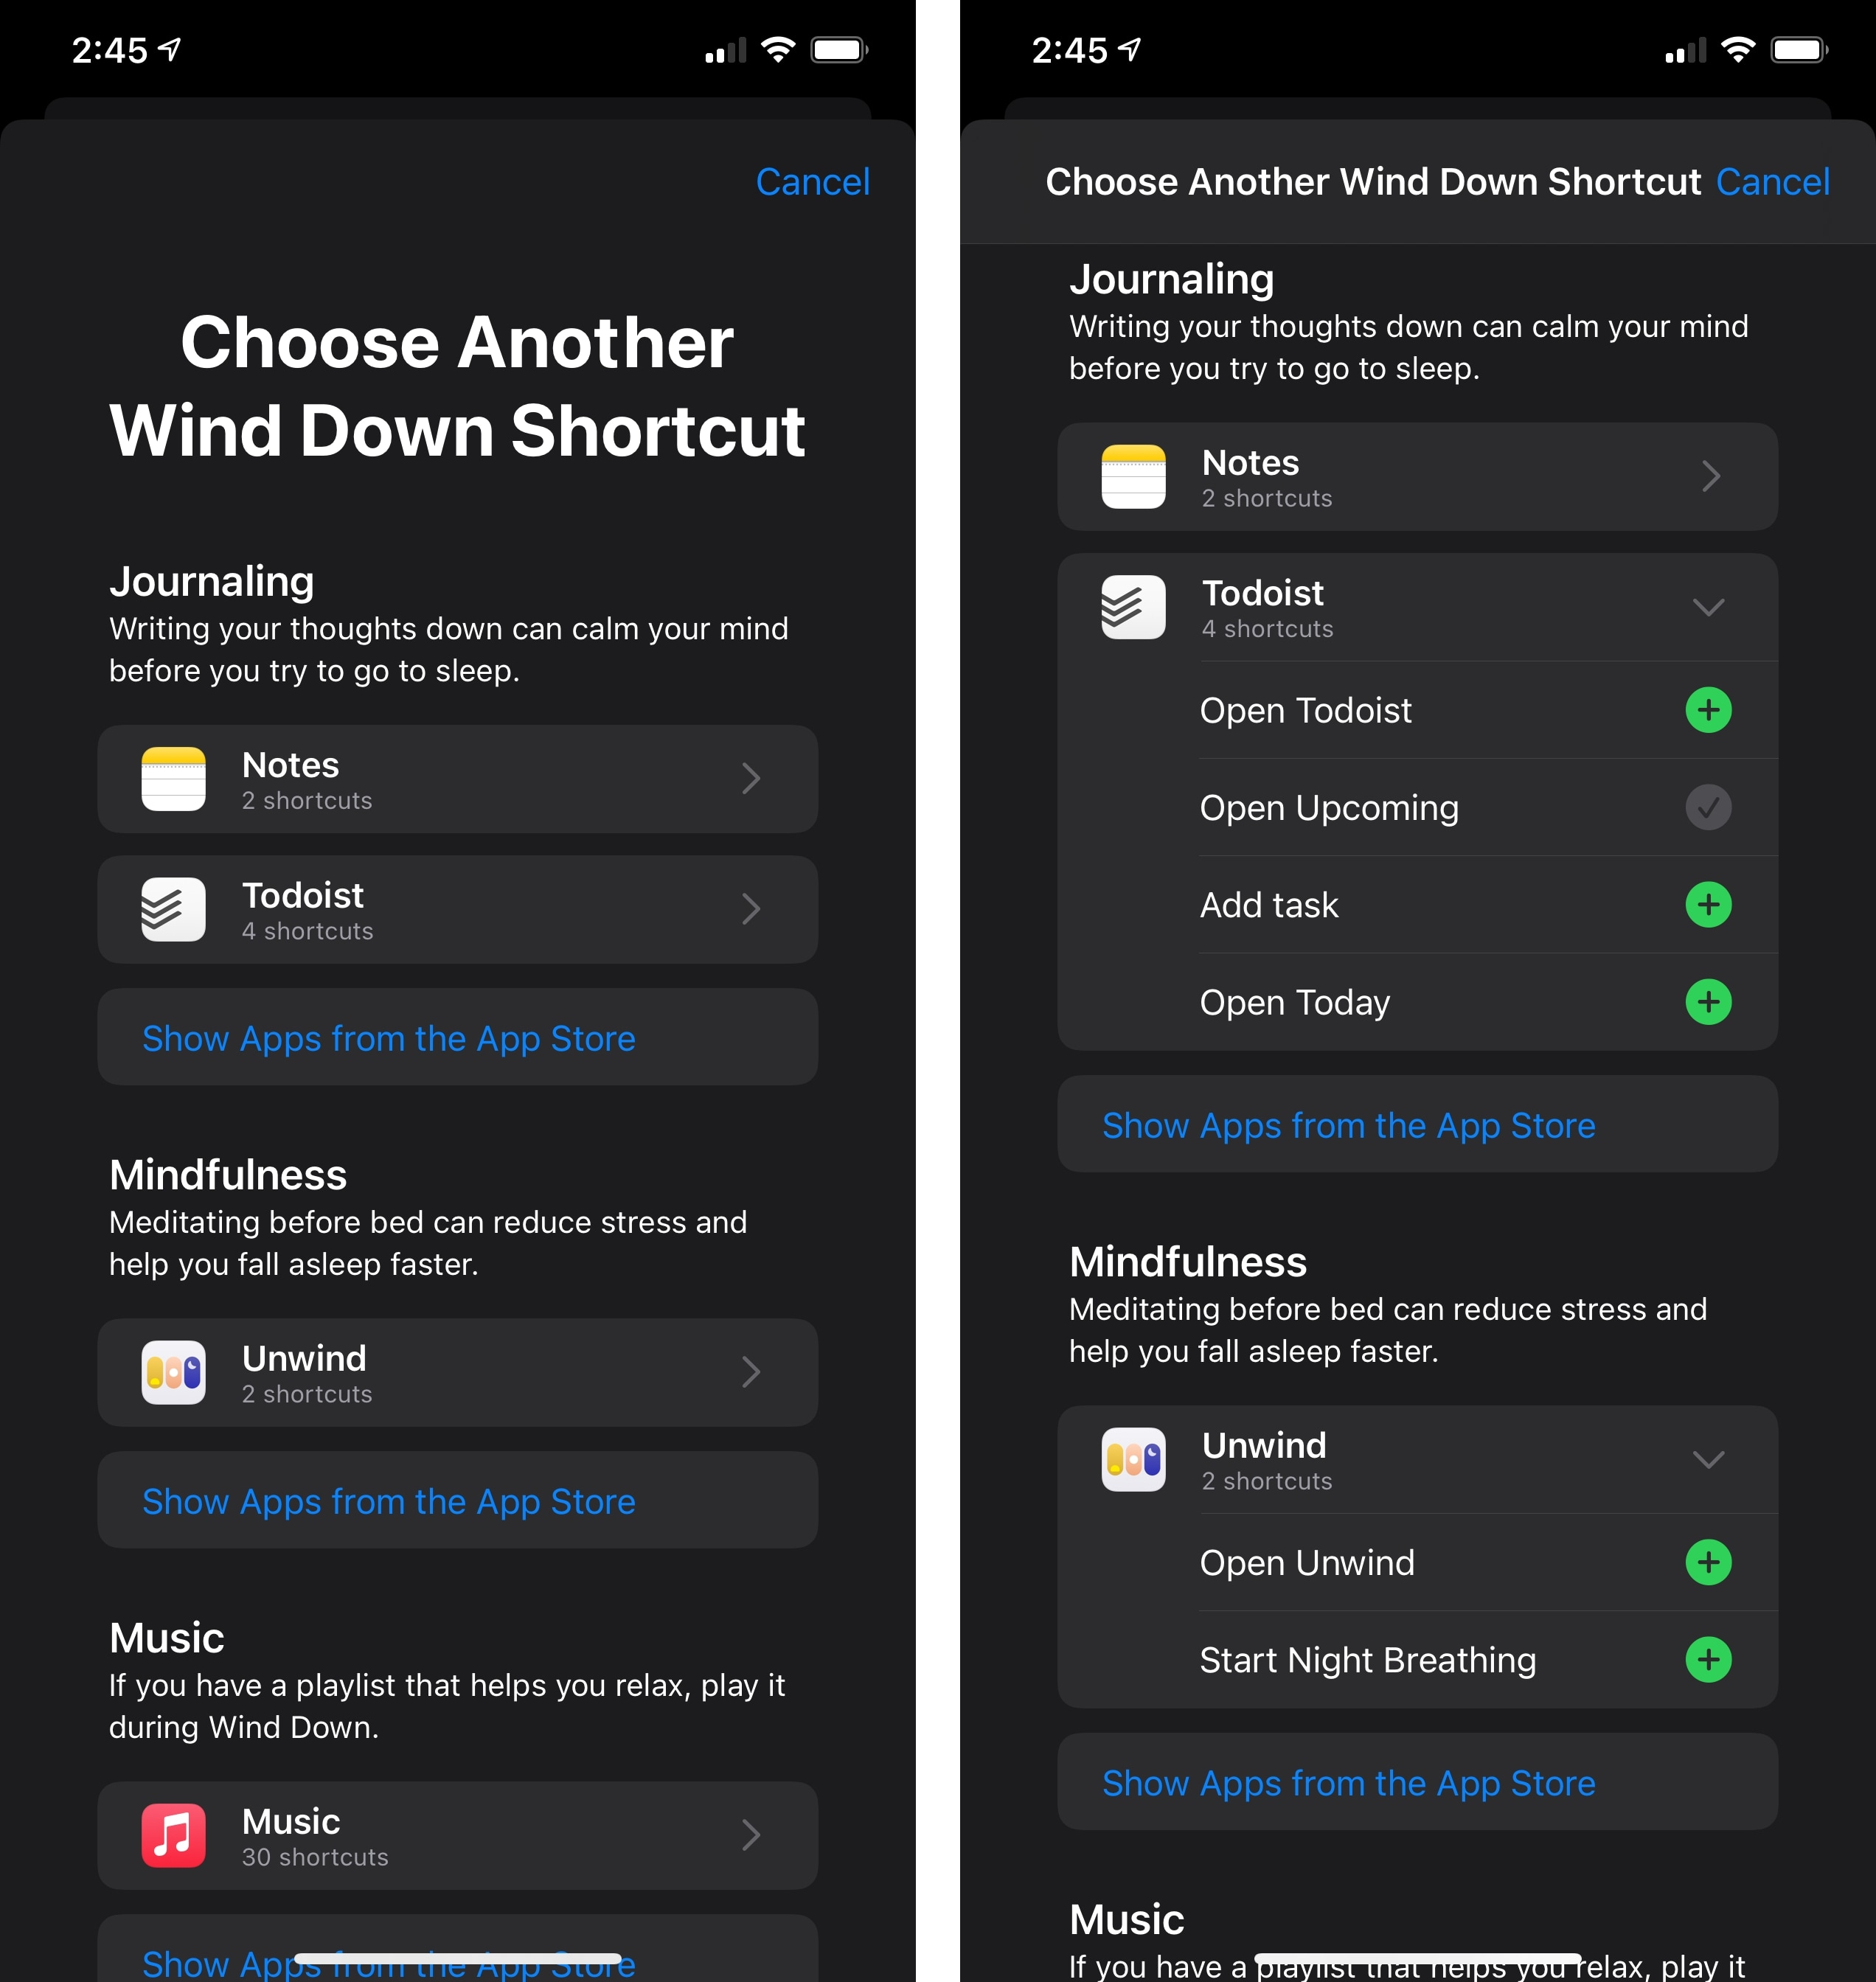 Shortcuts you add from Health's recommendations will also appear in the Shortcuts app as one-action shortcuts.